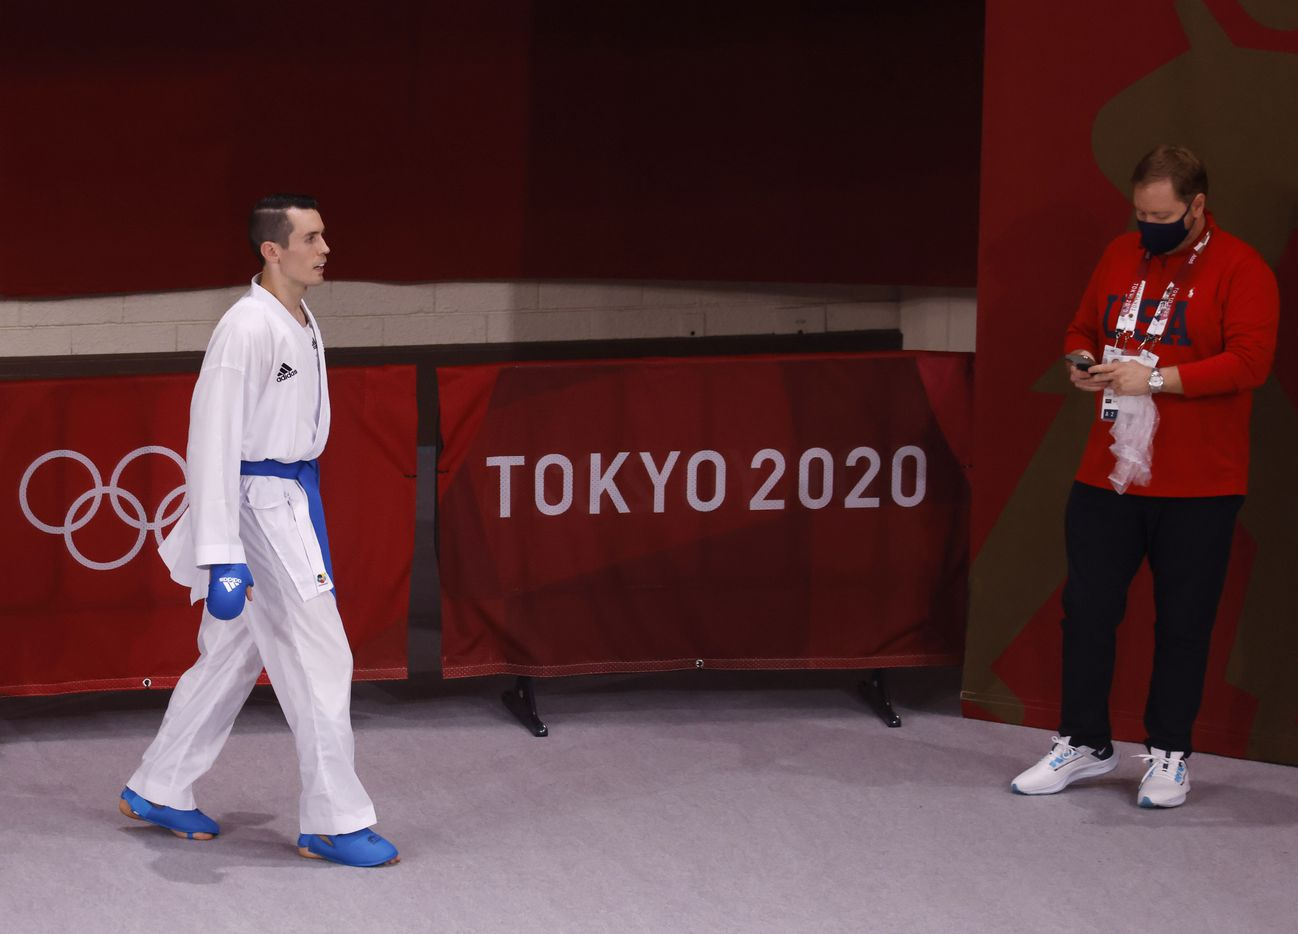 USA's Tom Scott paces before competing in the karate men's kumite -75kg elimination round at the postponed 2020 Tokyo Olympics at Nippon Budokan, on Friday, August 6, 2021, in Tokyo, Japan. Scott finished in fourth place in his pool and did not advance to the next round. (Vernon Bryant/The Dallas Morning News)